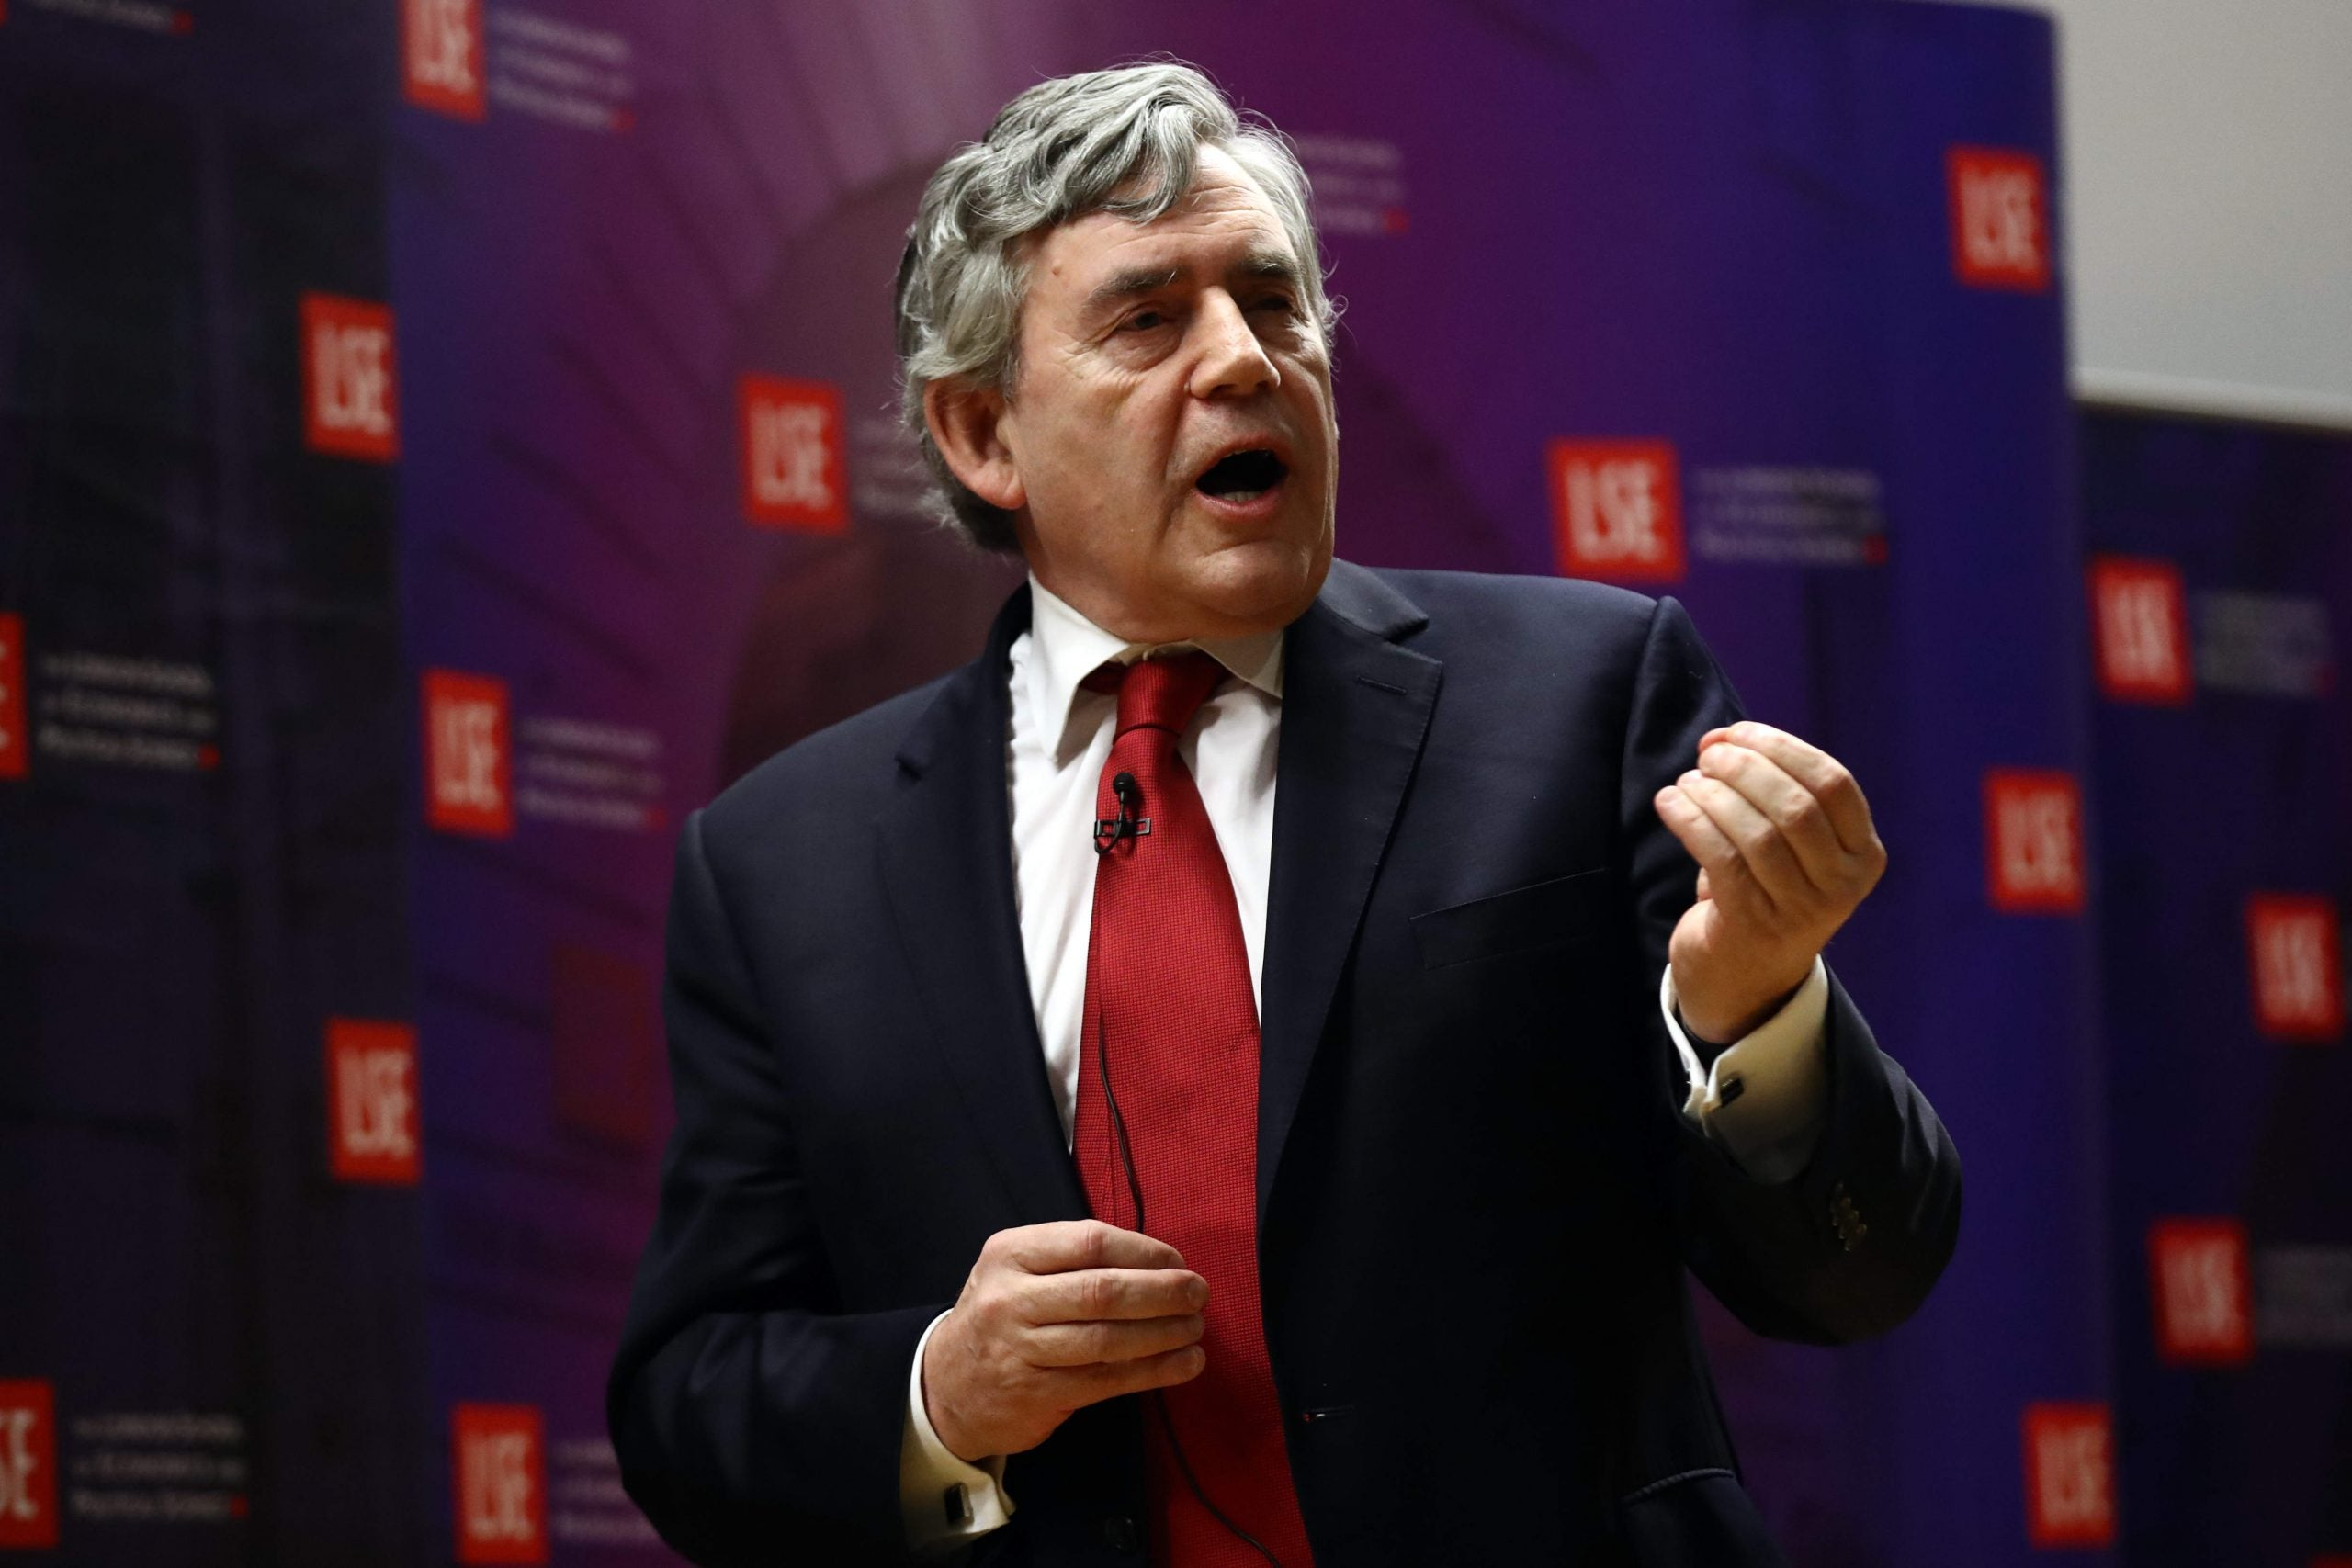 Gordon Brown's book shows the UK can survive outside Europe – but can flourish inside it